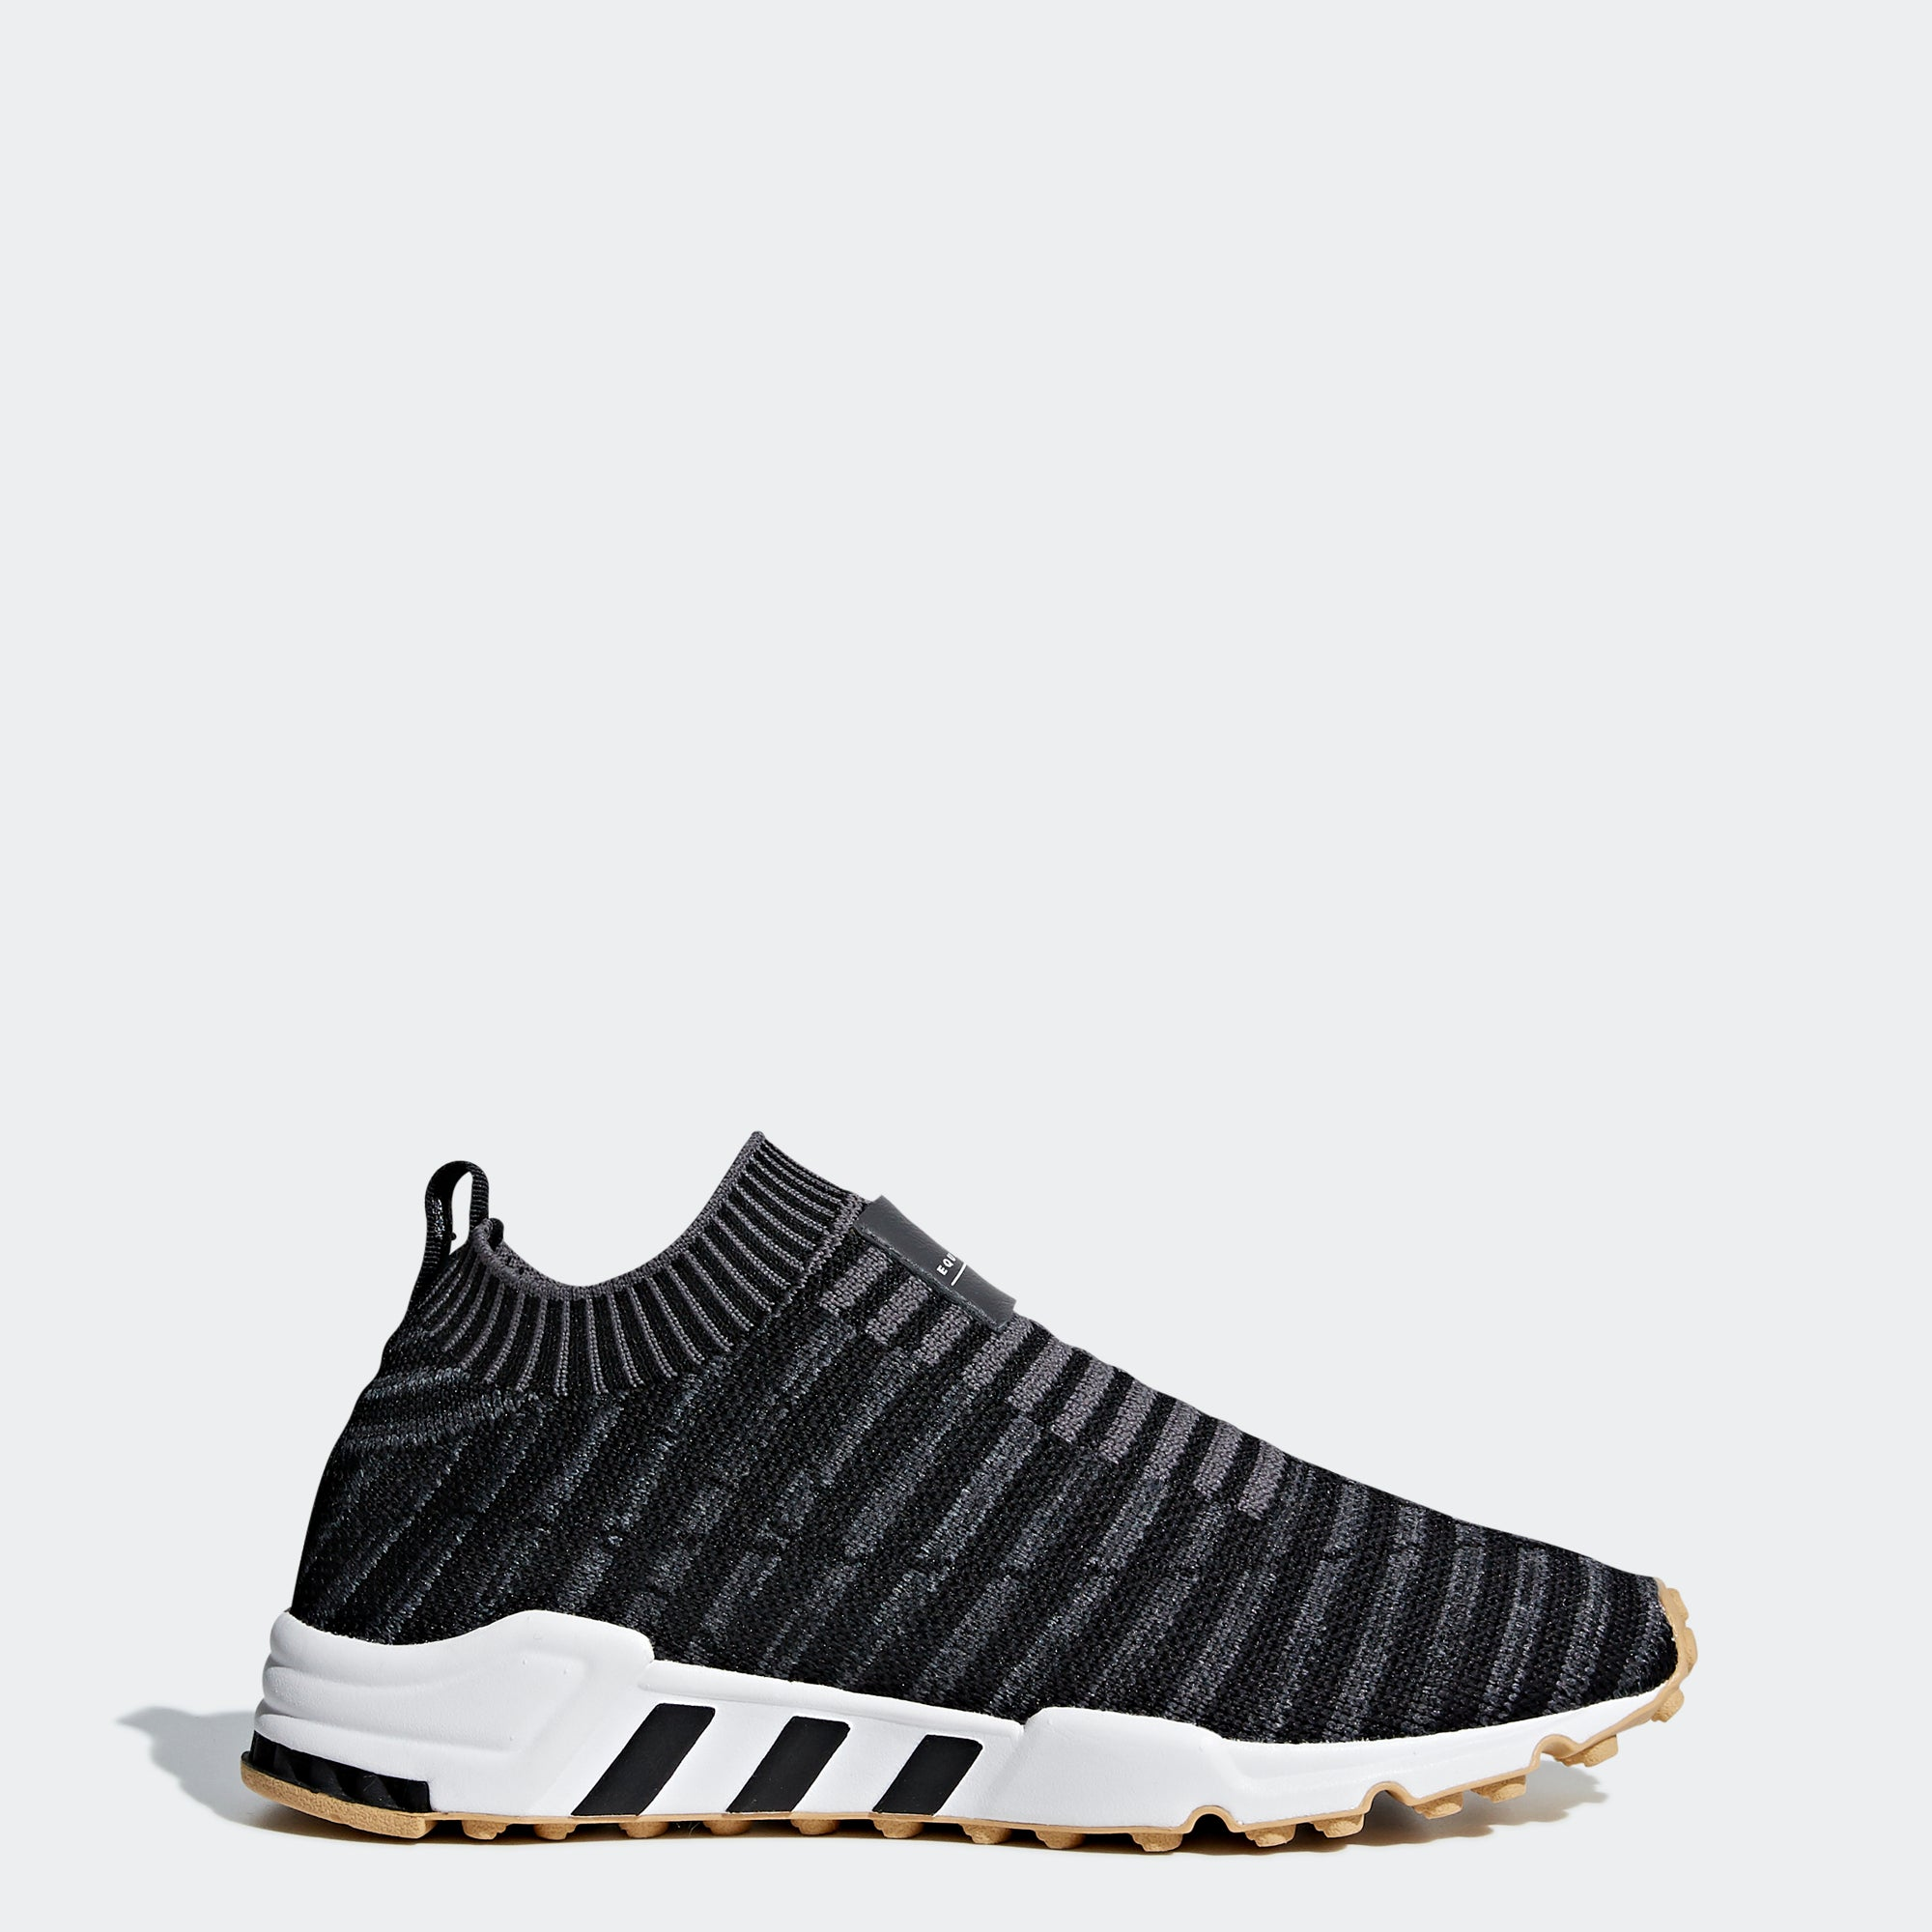 premium selection b0305 49a87 Womens Adidas Originals EQT Support Sock Primeknit Shoes Black